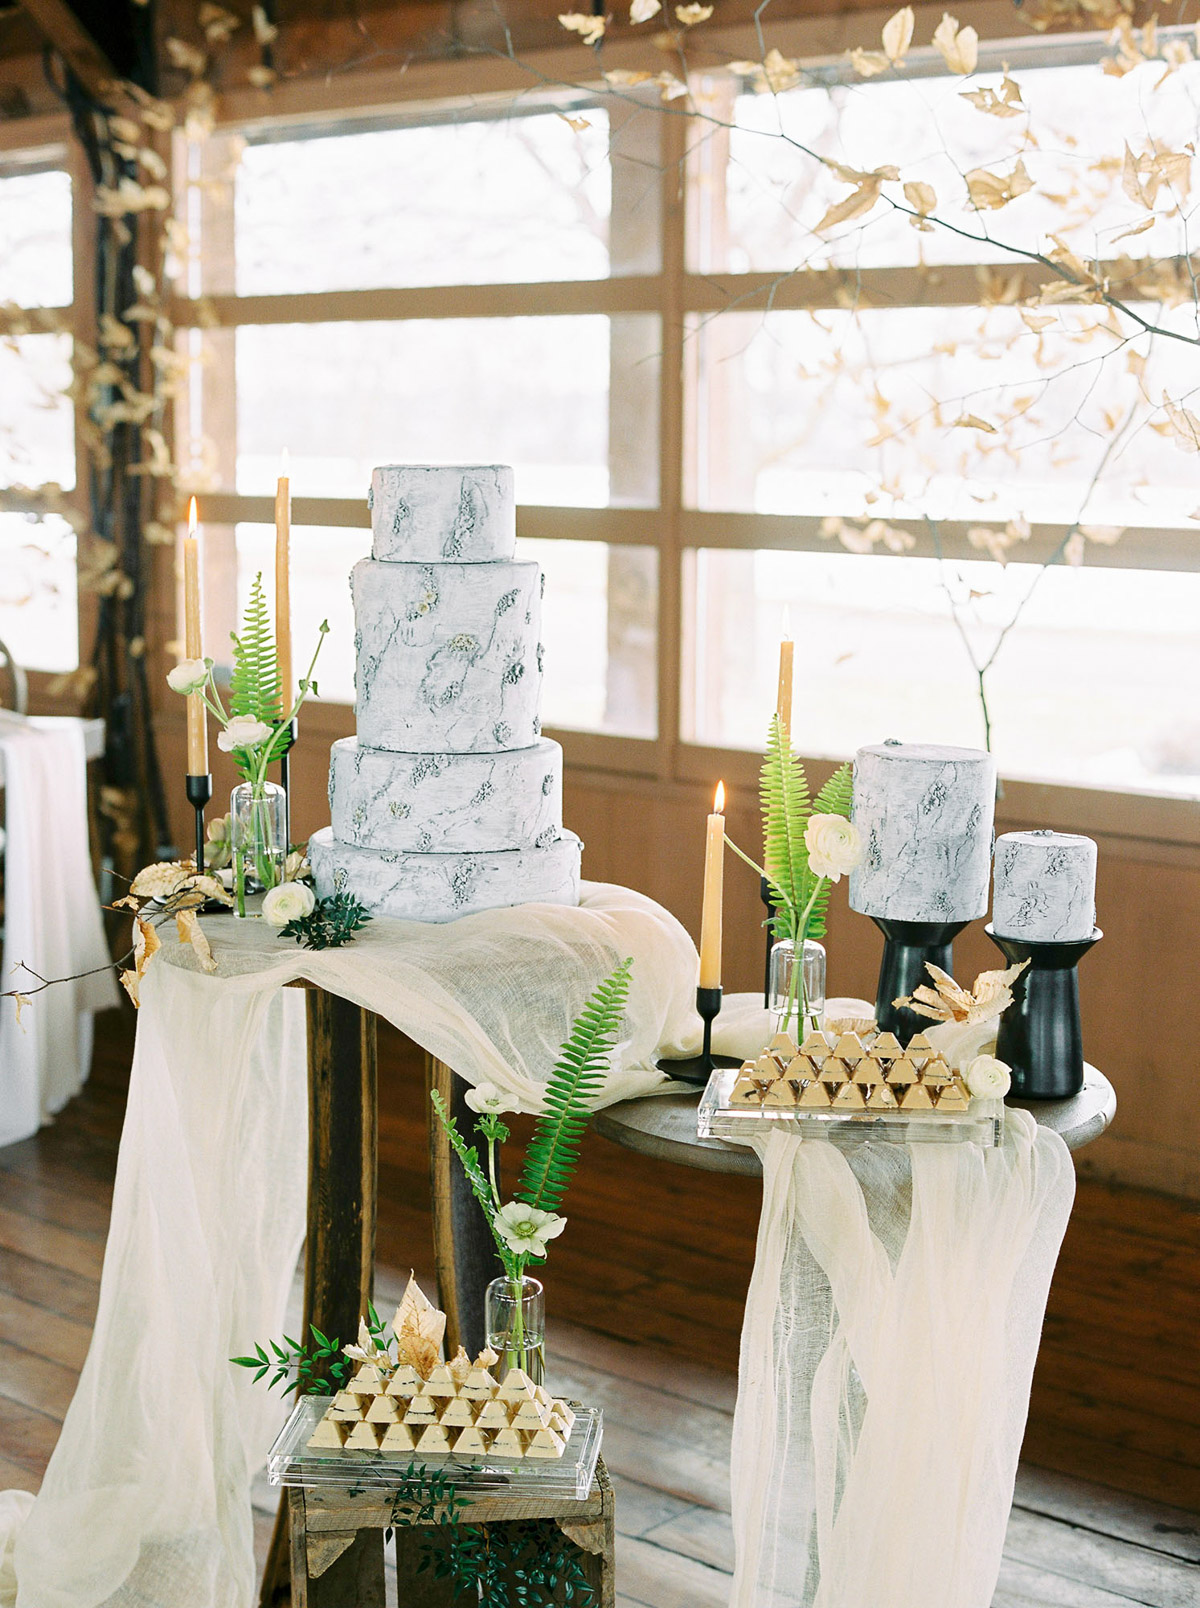 will-reid-photo-vineyard-bride-swish-list-kurtz-orchards-market-niagara-on-the-lake-wedding-editorial-32.jpg